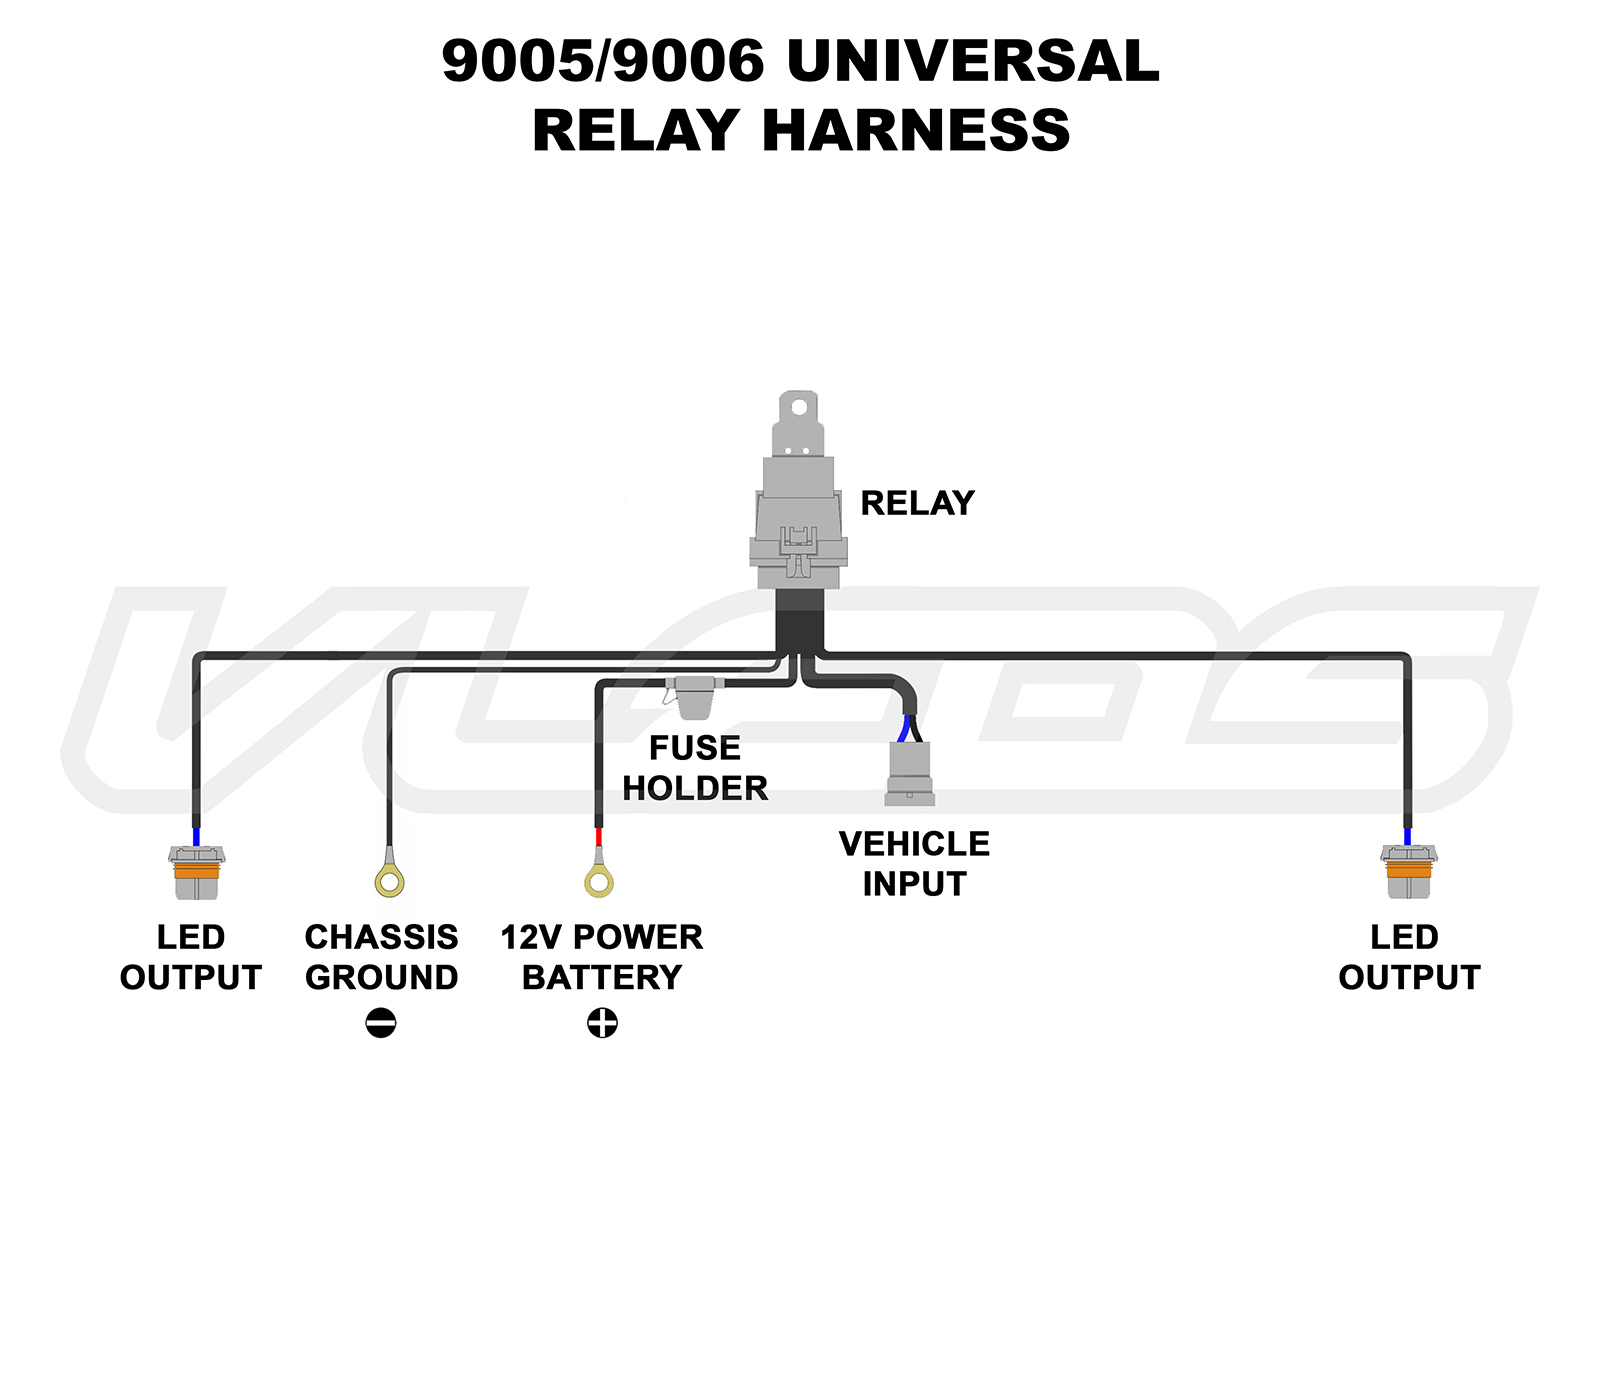 universal relay wiring diagram 110 volt and schematics source 9005 9006 headlight data todaywiring diagrams headlamp